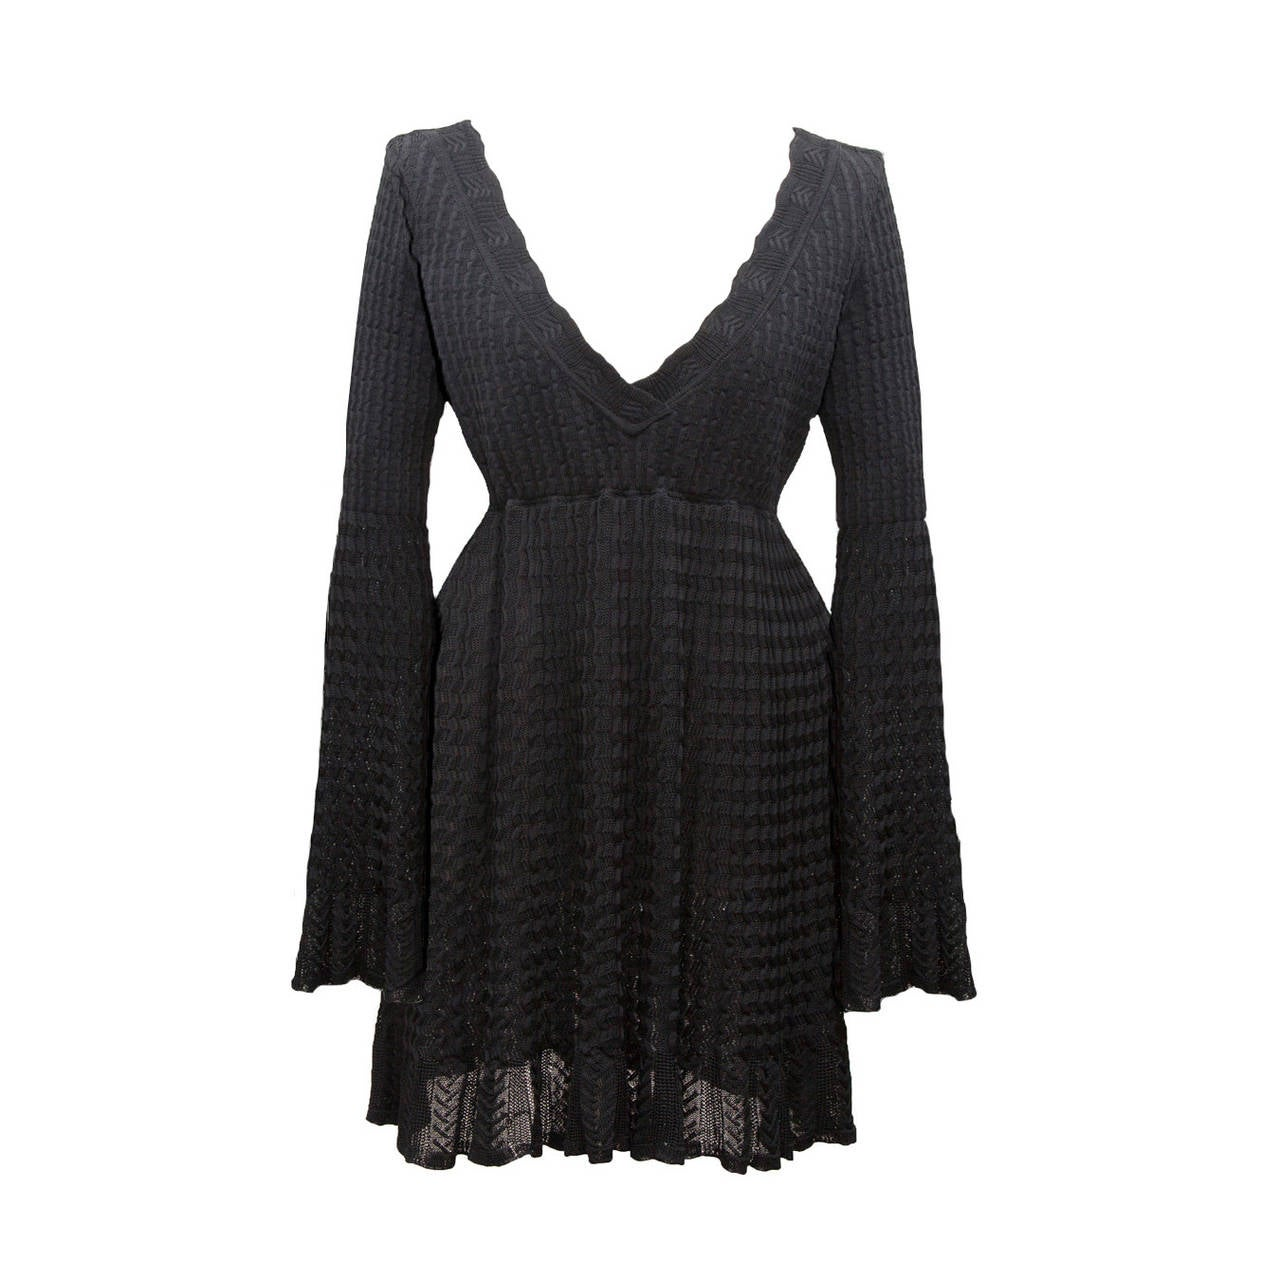 Alaia Black Knit Top Dress 1992